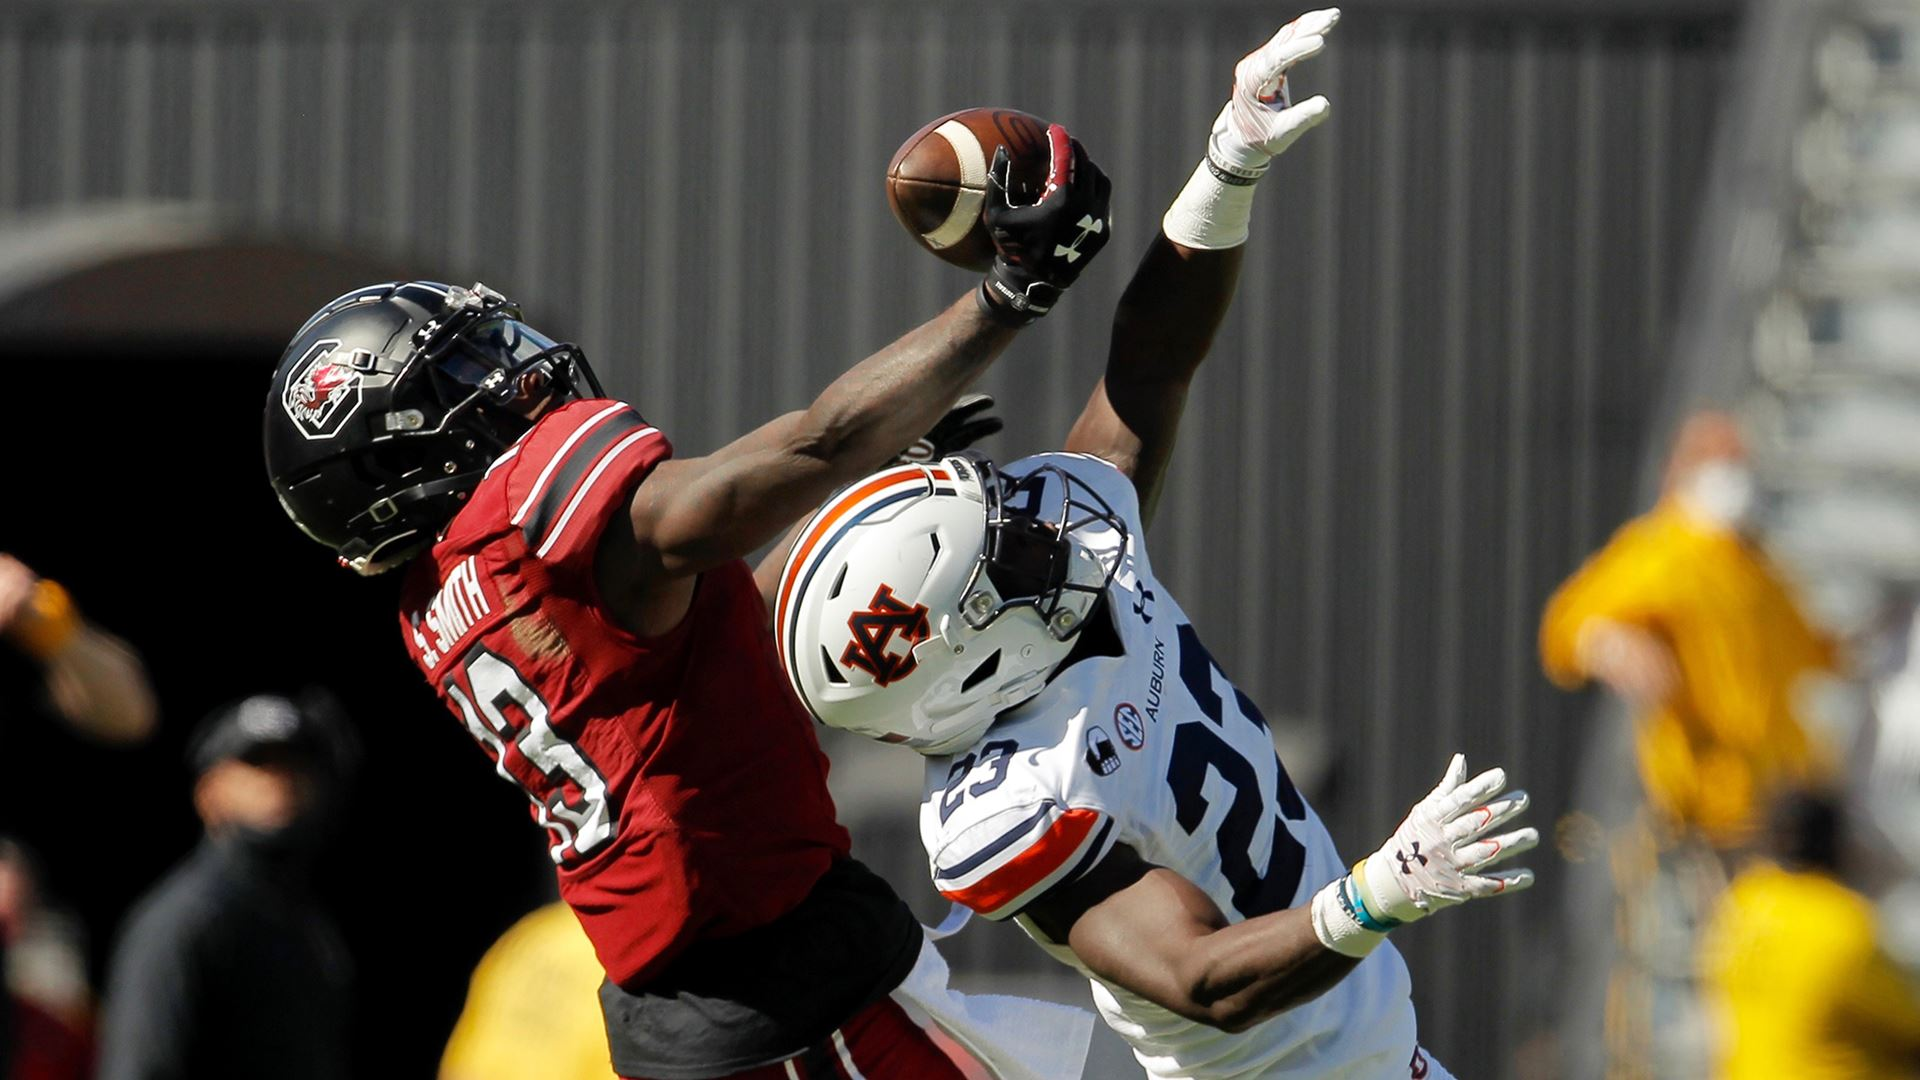 South Carolina wide receiver Shi Smith reaches for a reception against the Auburn Tigers